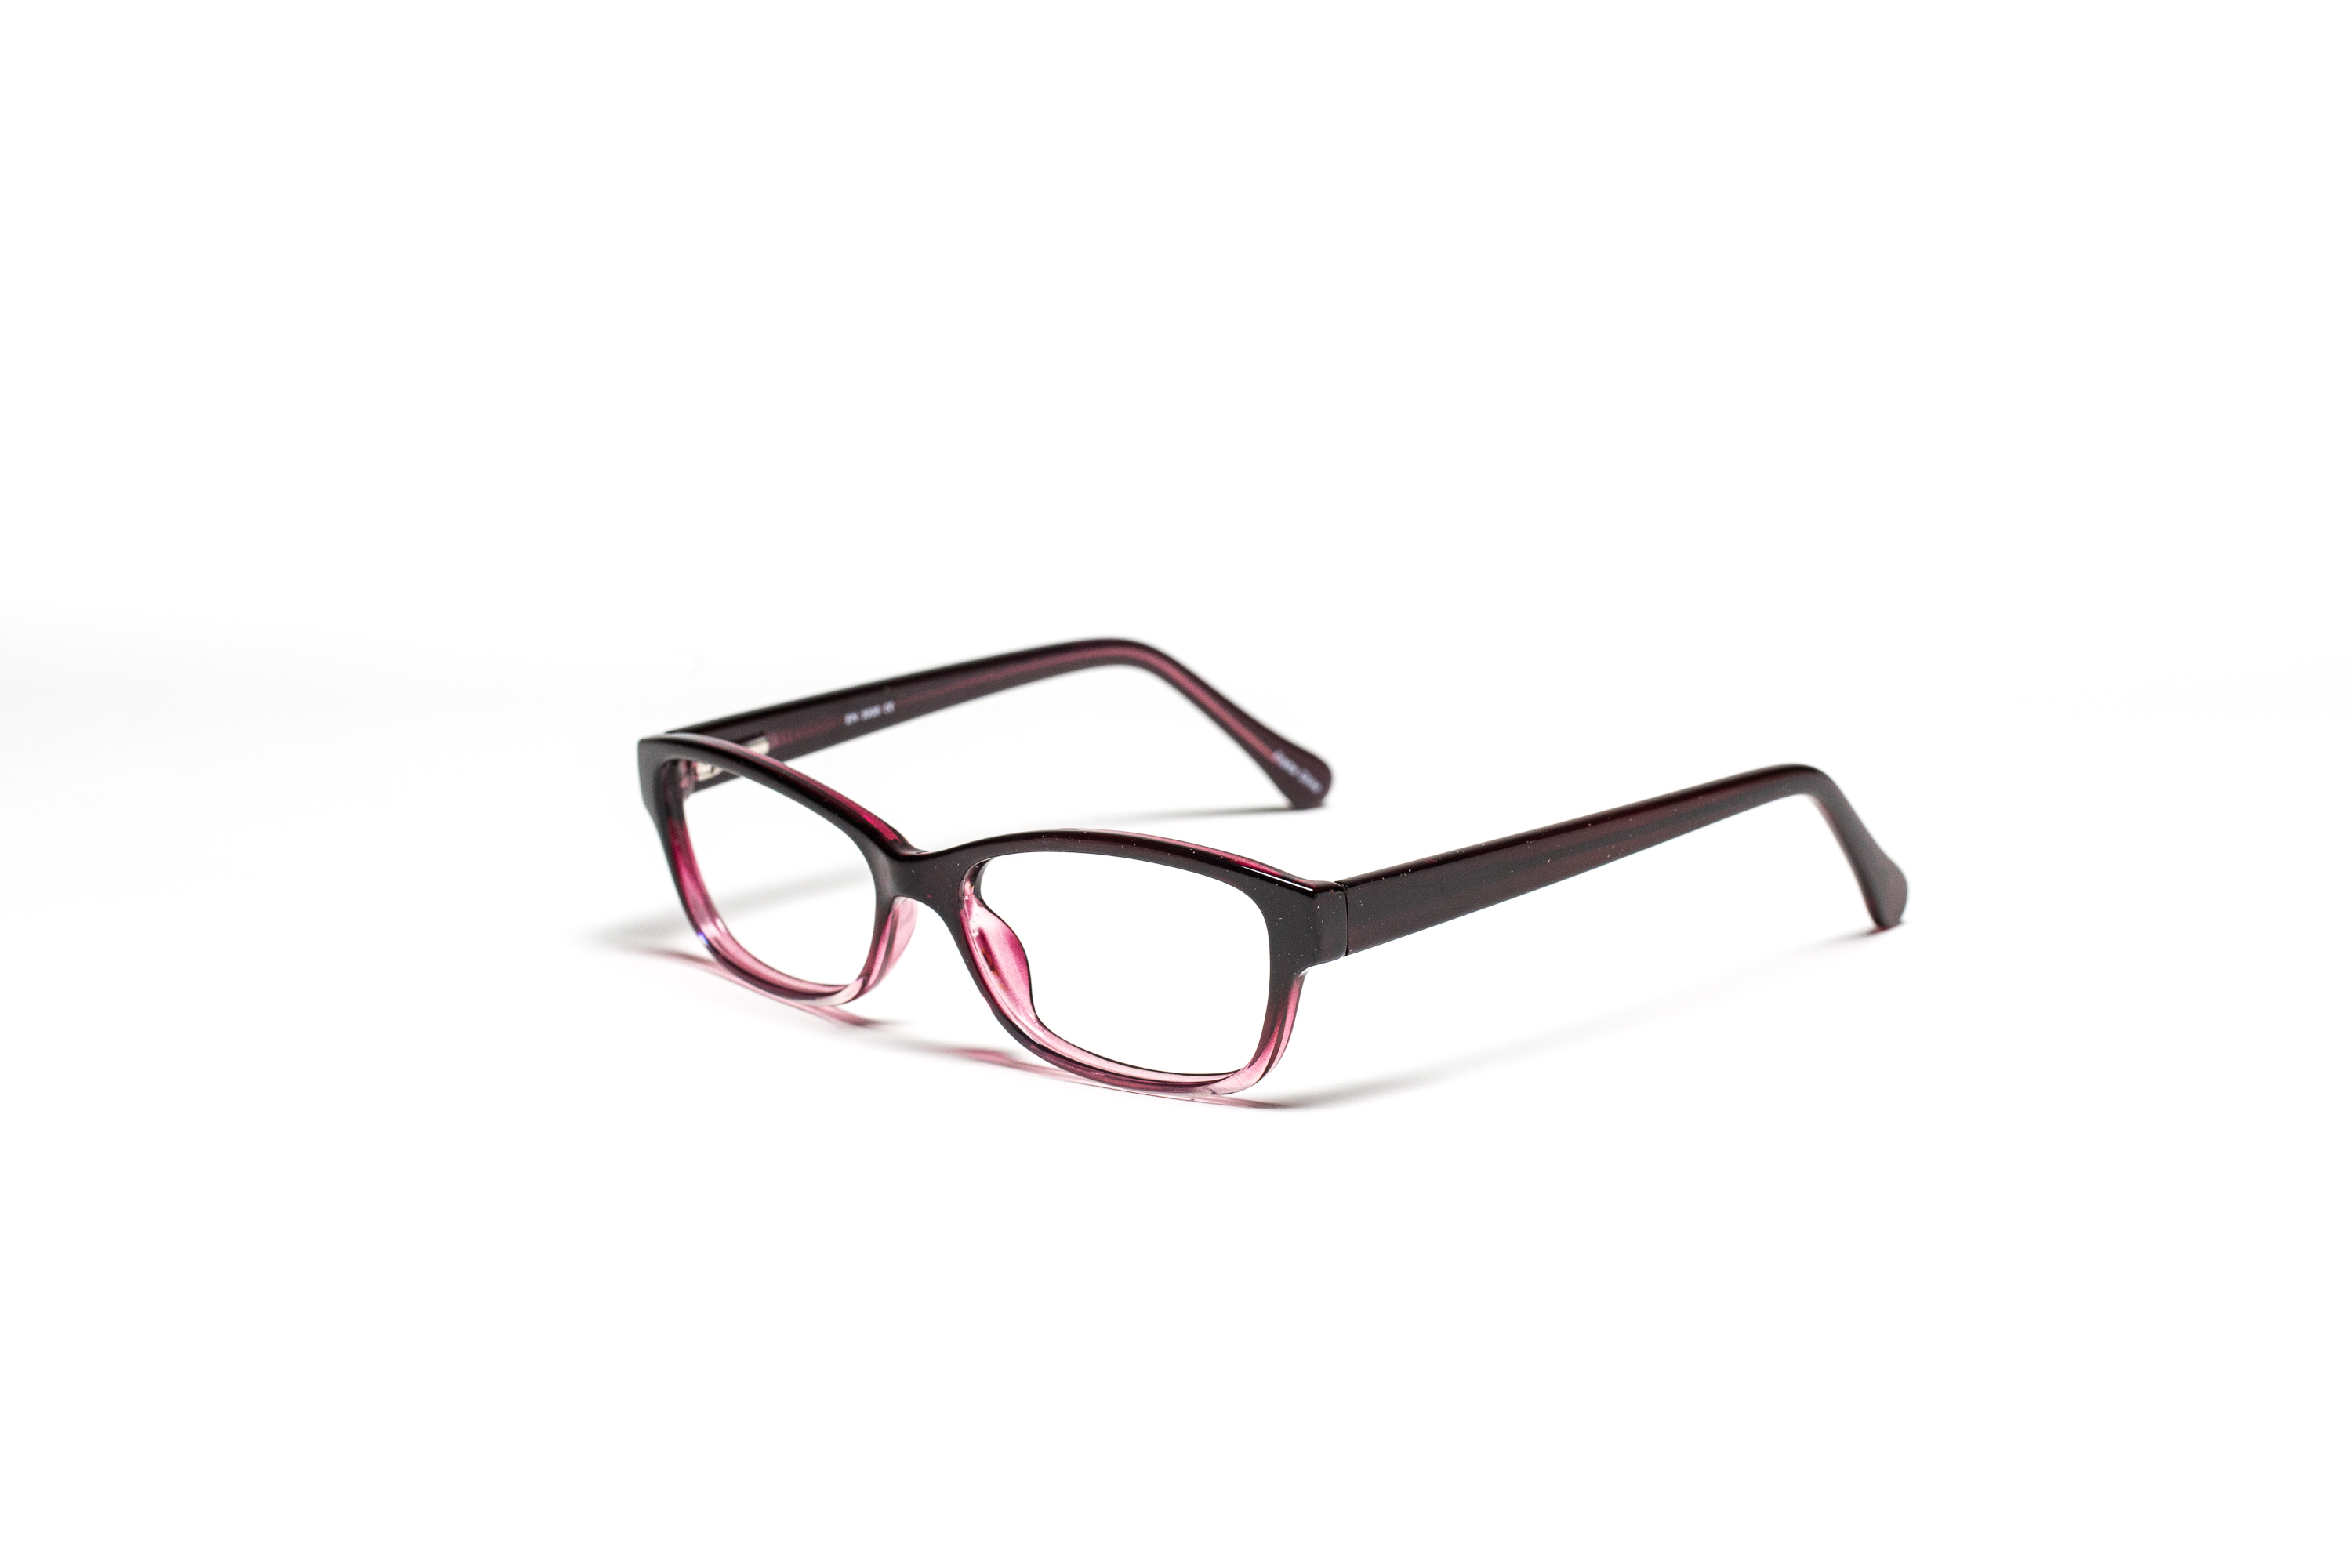 Arizona EN906 Eyeglass Frames - JCPenney Optical